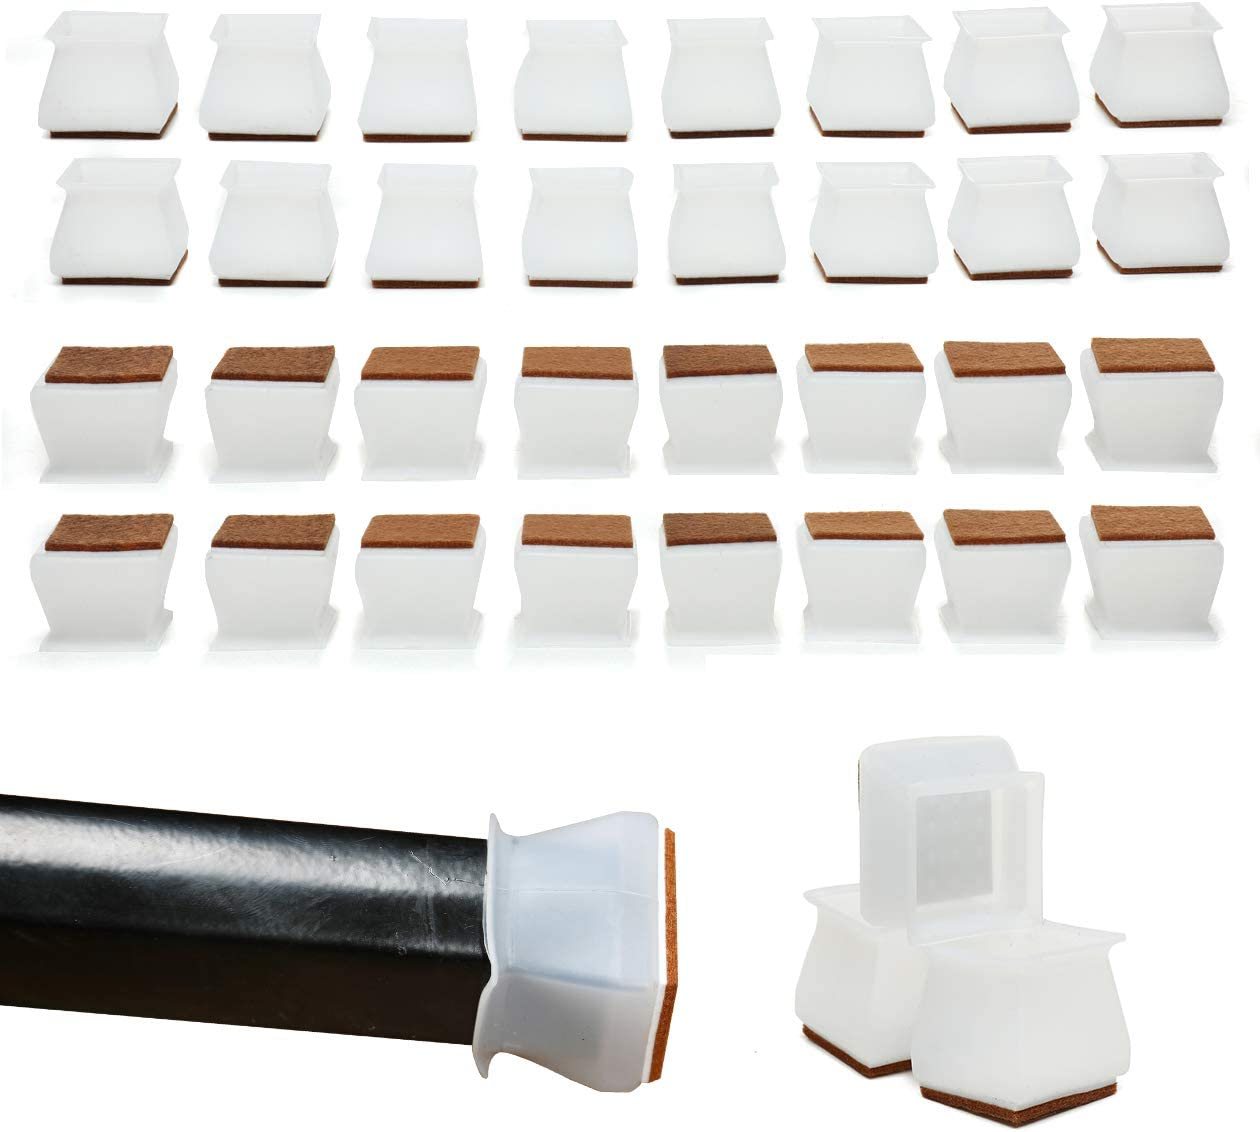 Aeepd Chair Legs Caps 32pcs Square Floor Protectors Furniture Silicon Anti-Slip Protection Cover with Felt Pads